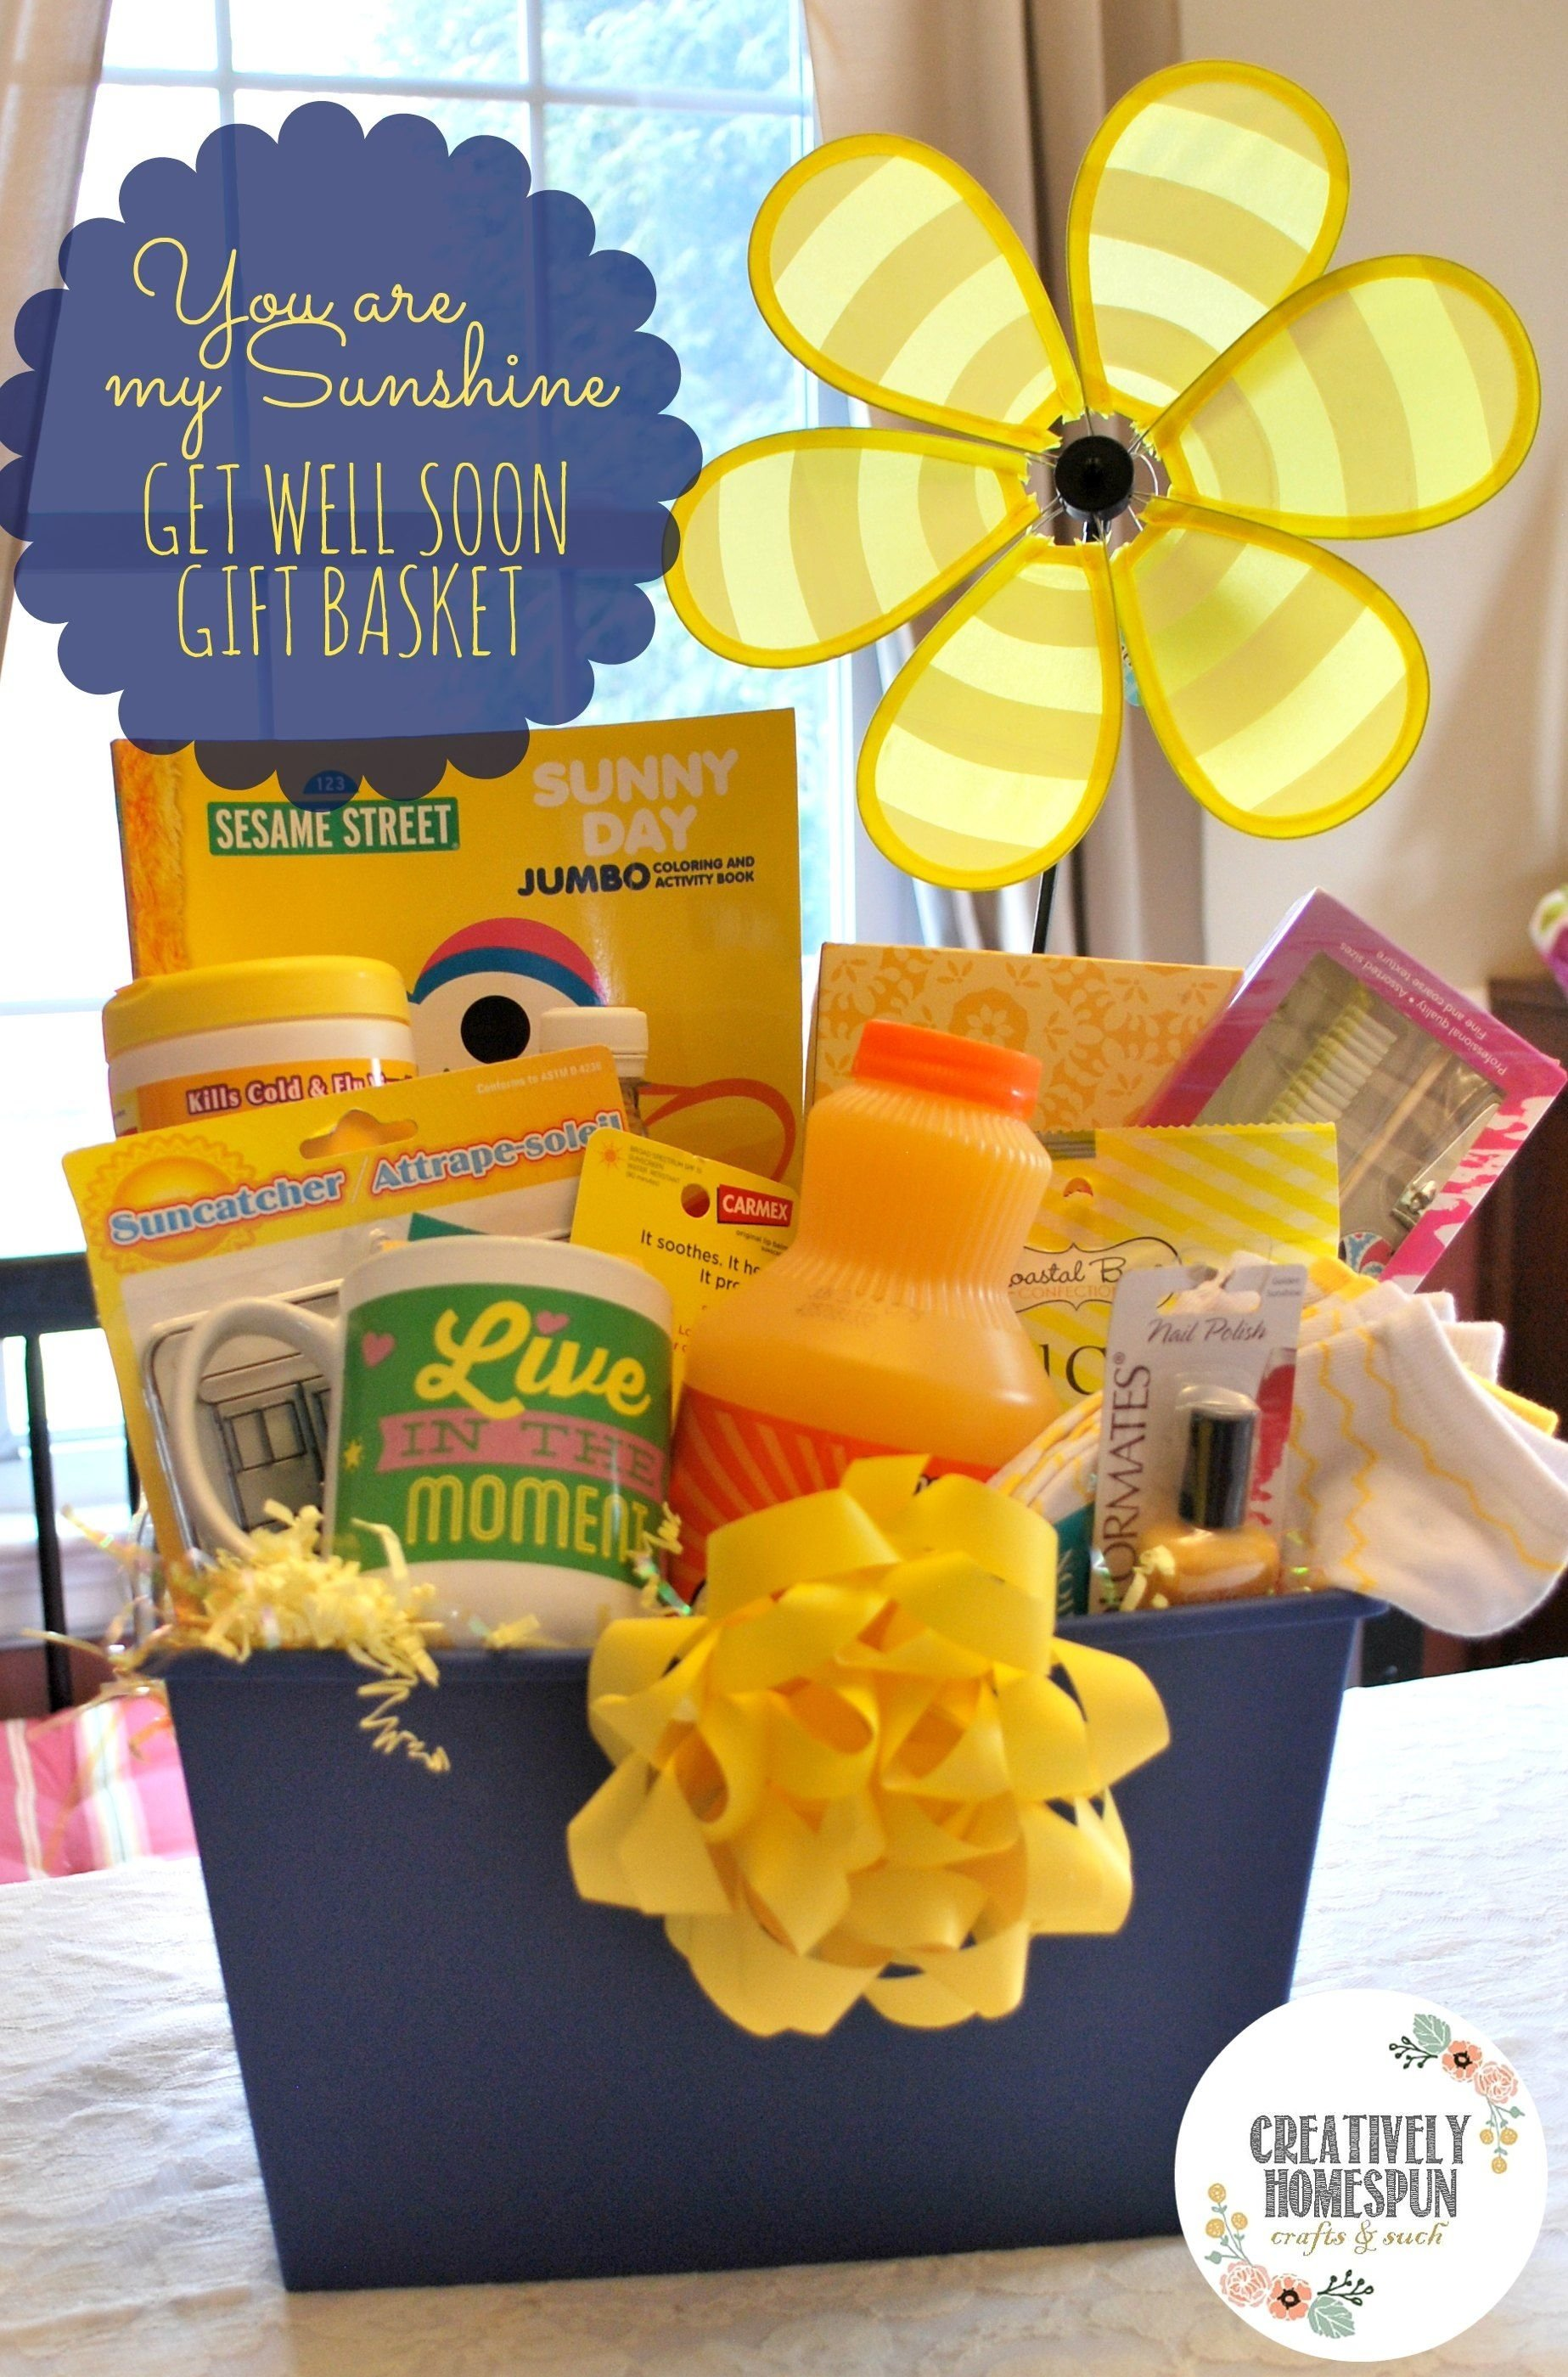 diy: you are my sunshine: get well gift basket | sunshine, gift and